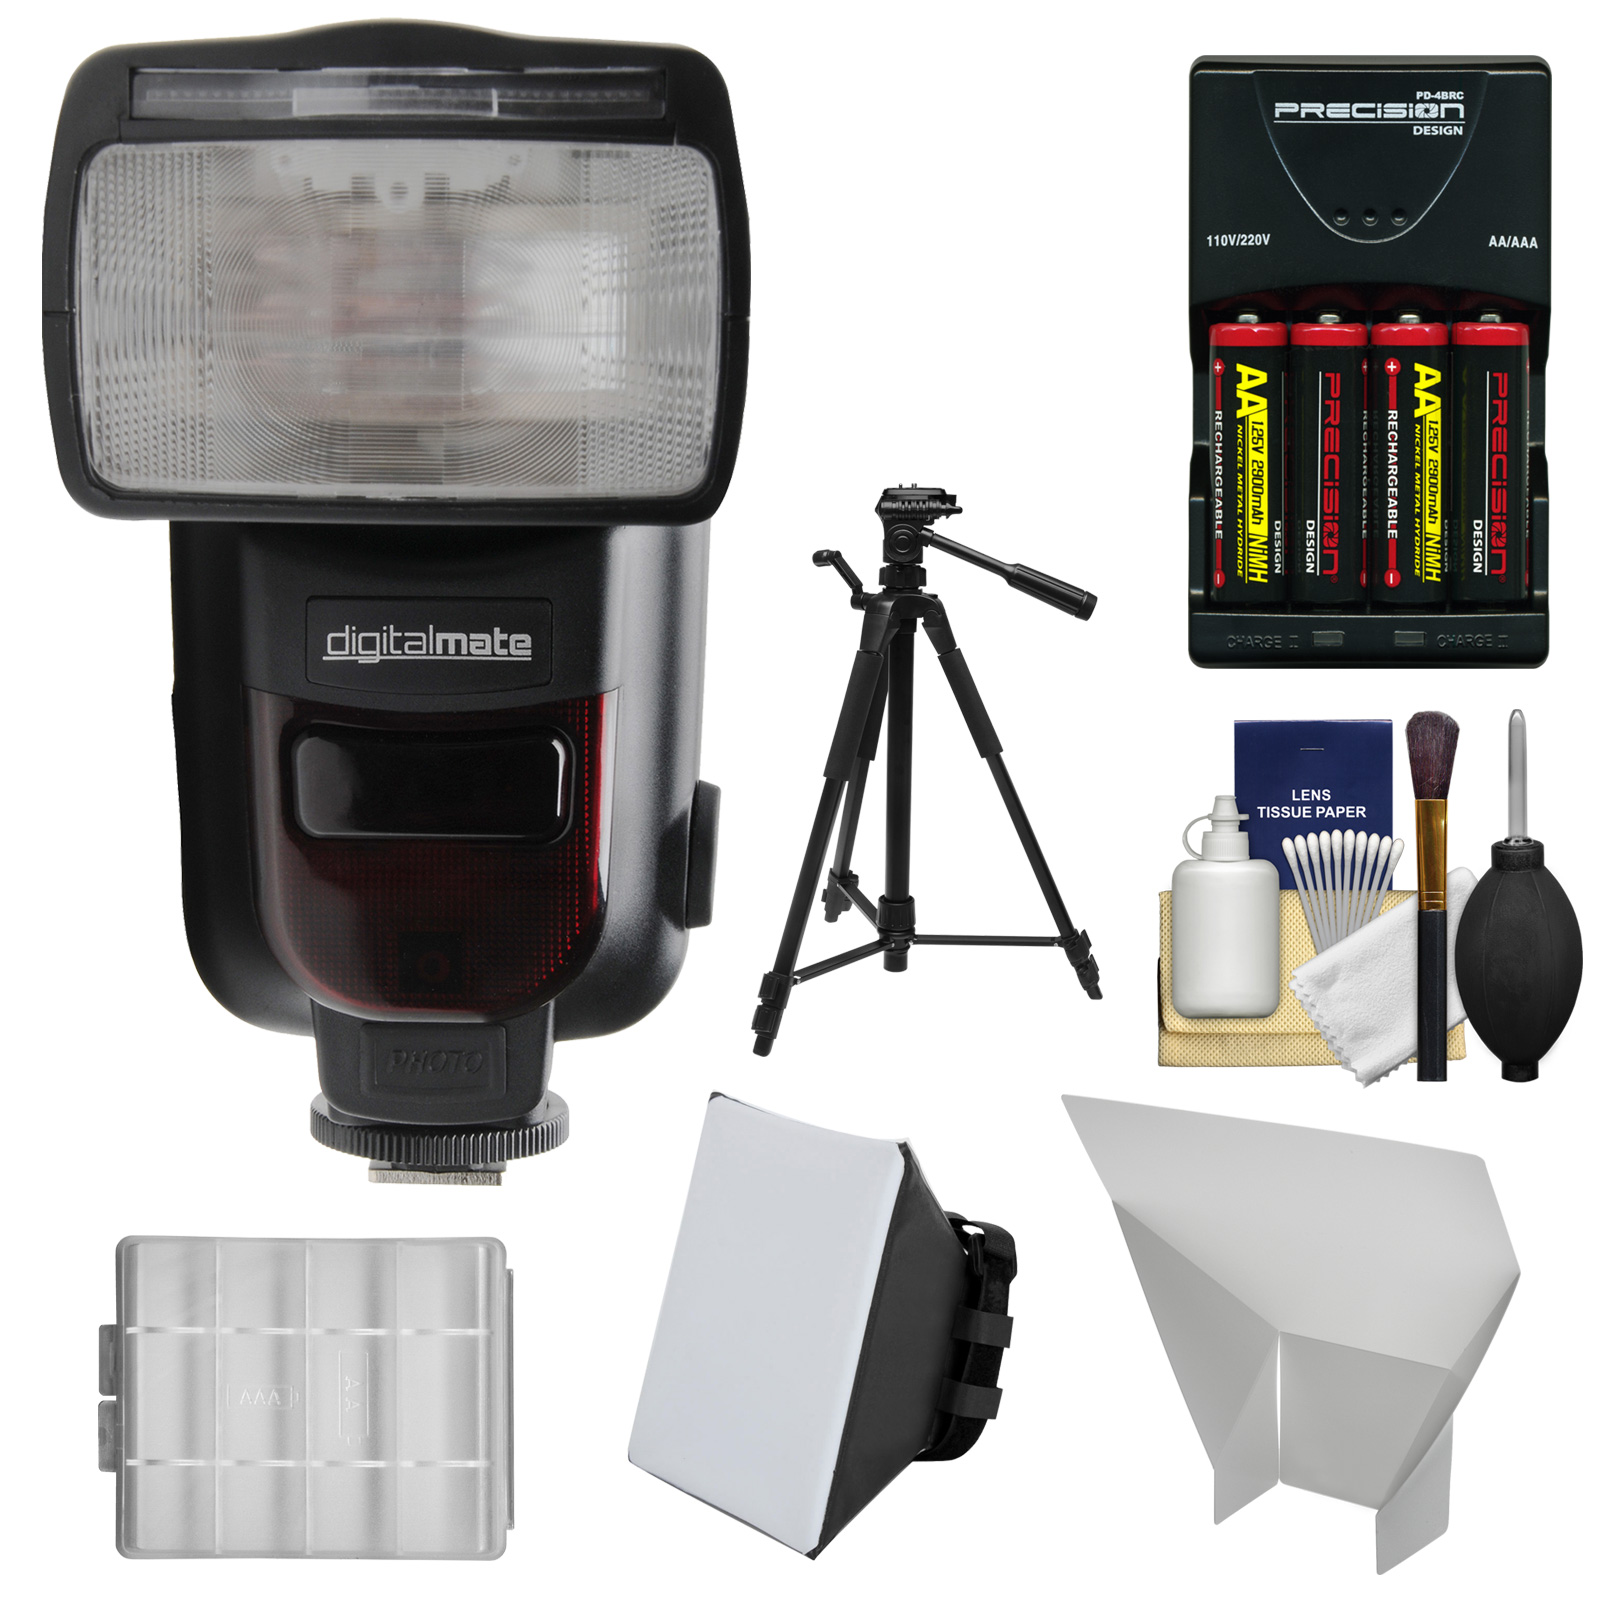 Digitalmate 780 Power Zoom AF E-TTL Flash with LCD Display + Batteries & Charger + Soft Box + Bounce Reflector + Tripod Kit for Canon EOS DSLR Camera